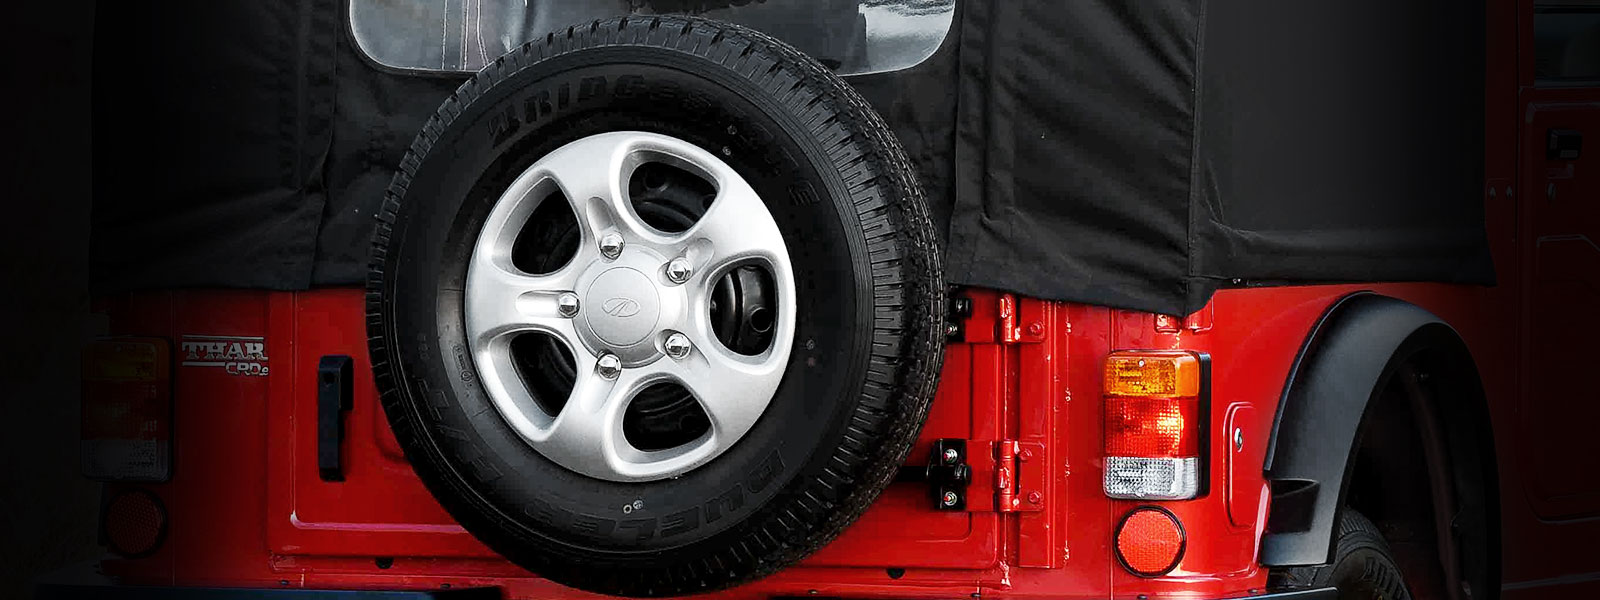 Spare wheel on rear tailgate